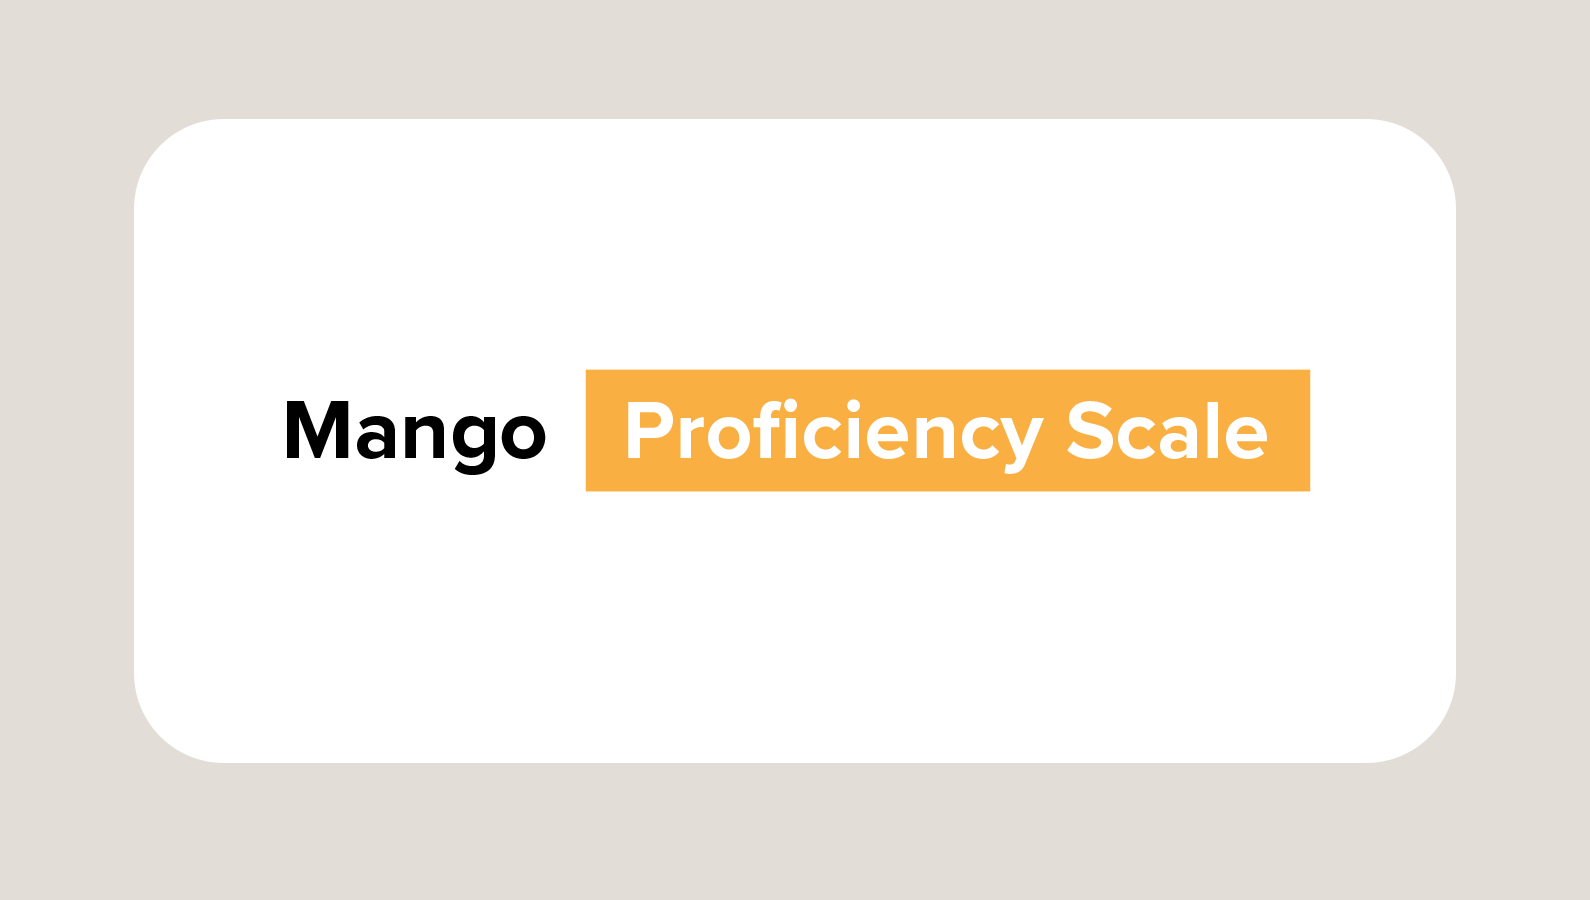 Where Do You Fall on the Mango Proficiency Scale?